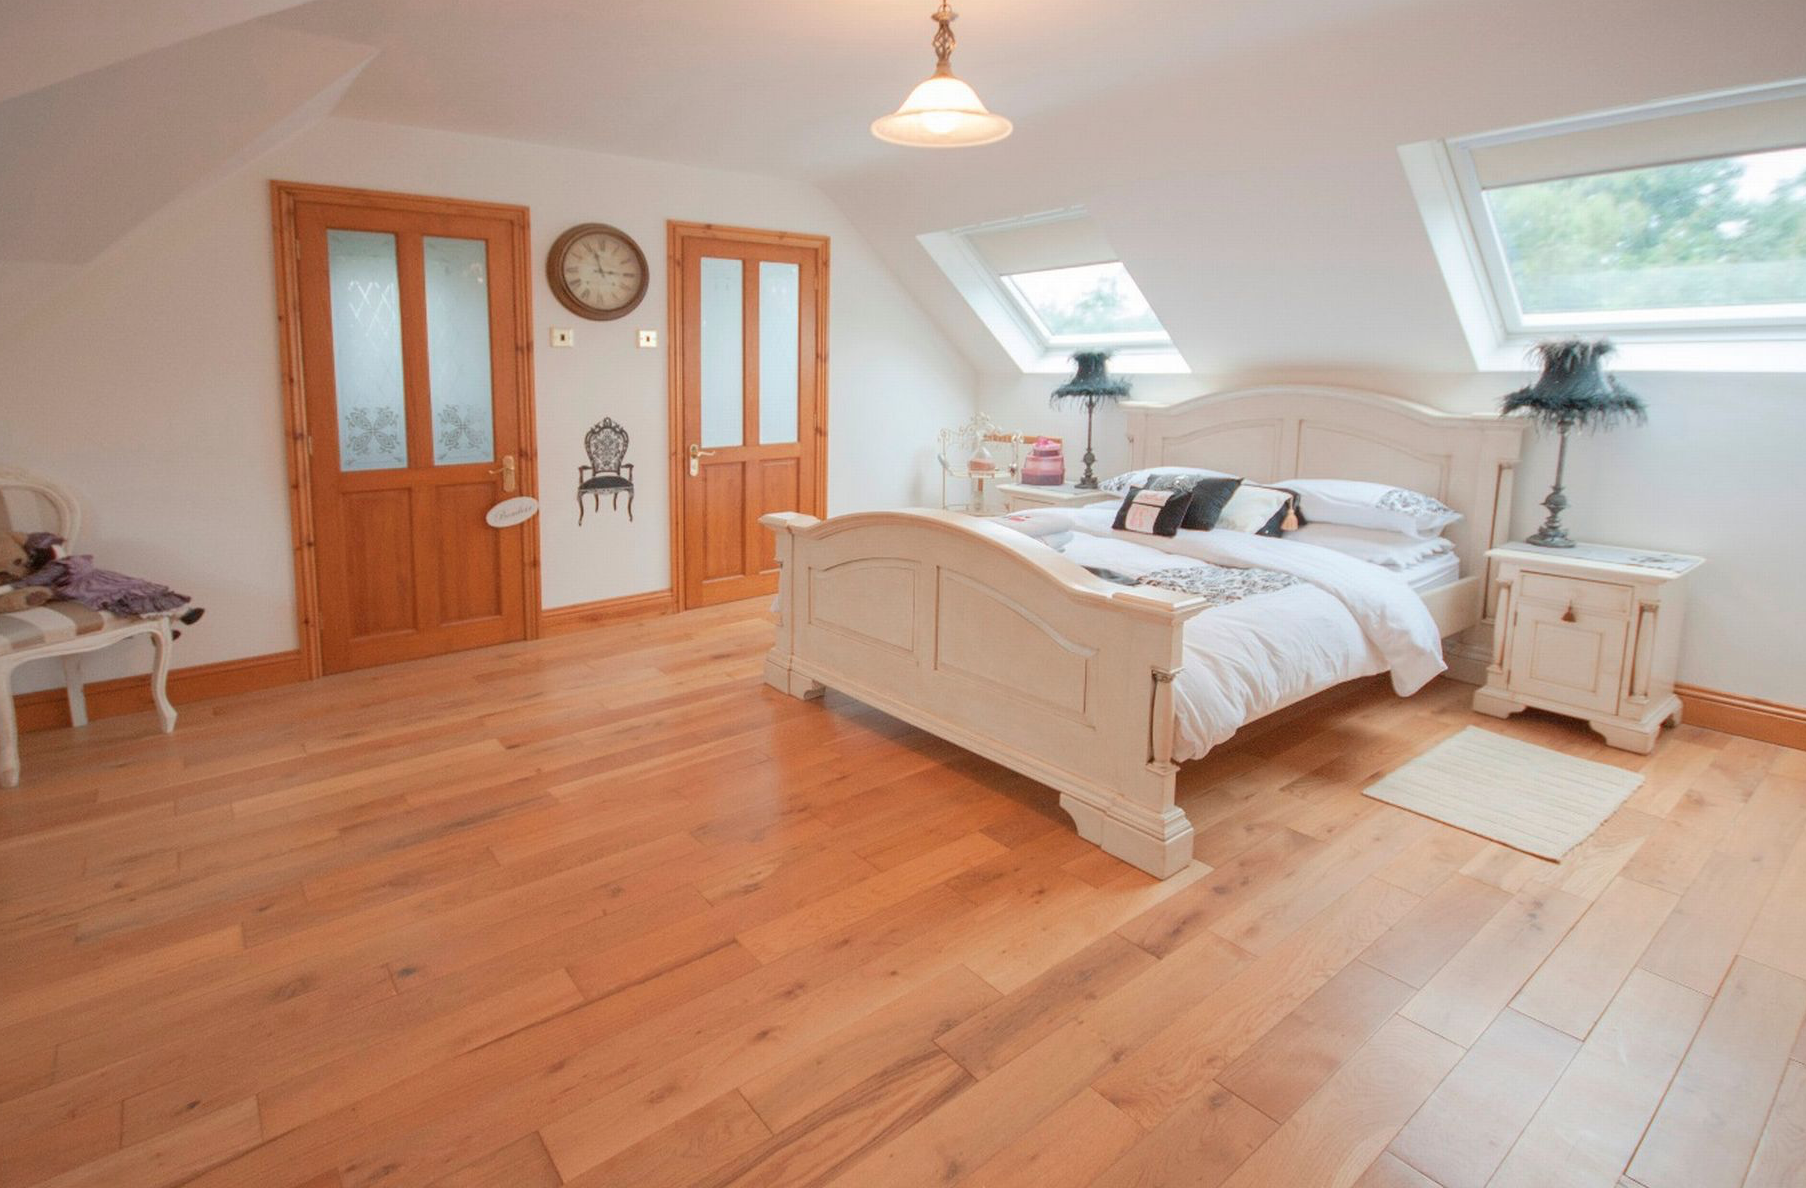 Cottage dormer loft conversion in Reddish, creating a large bedroom with Velux windows